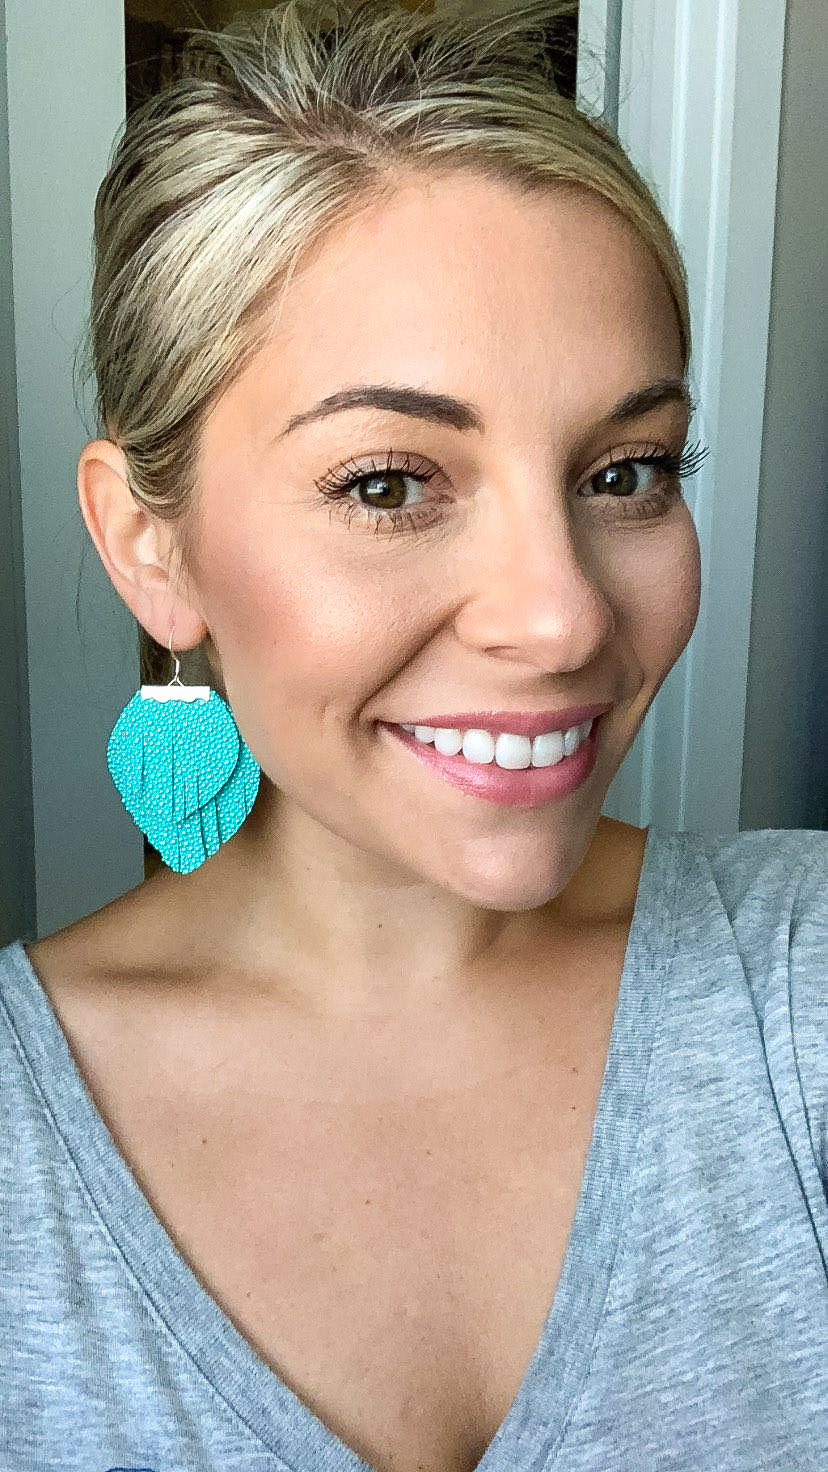 Aqua Textured 2-layer Fringe Earrings